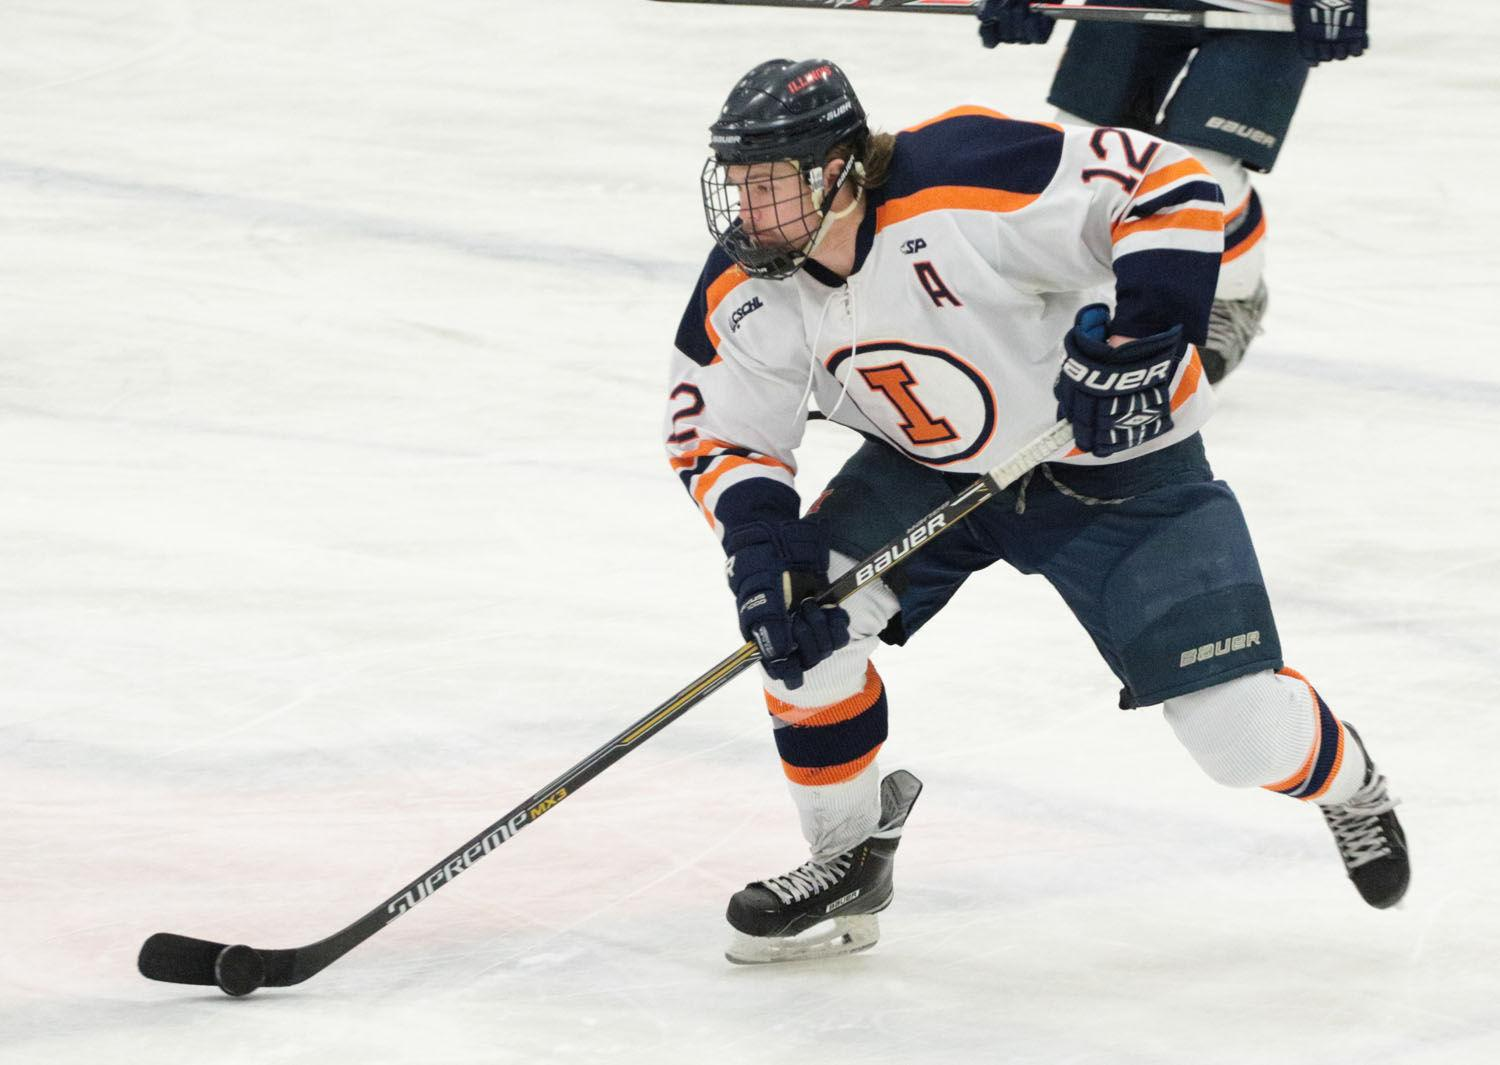 Illinois' Jonathan Langan (12) moves the puck down the rink during the hockey game v. Eastern Michigan at the Ice Arena on Friday. Illinois won 10-1.